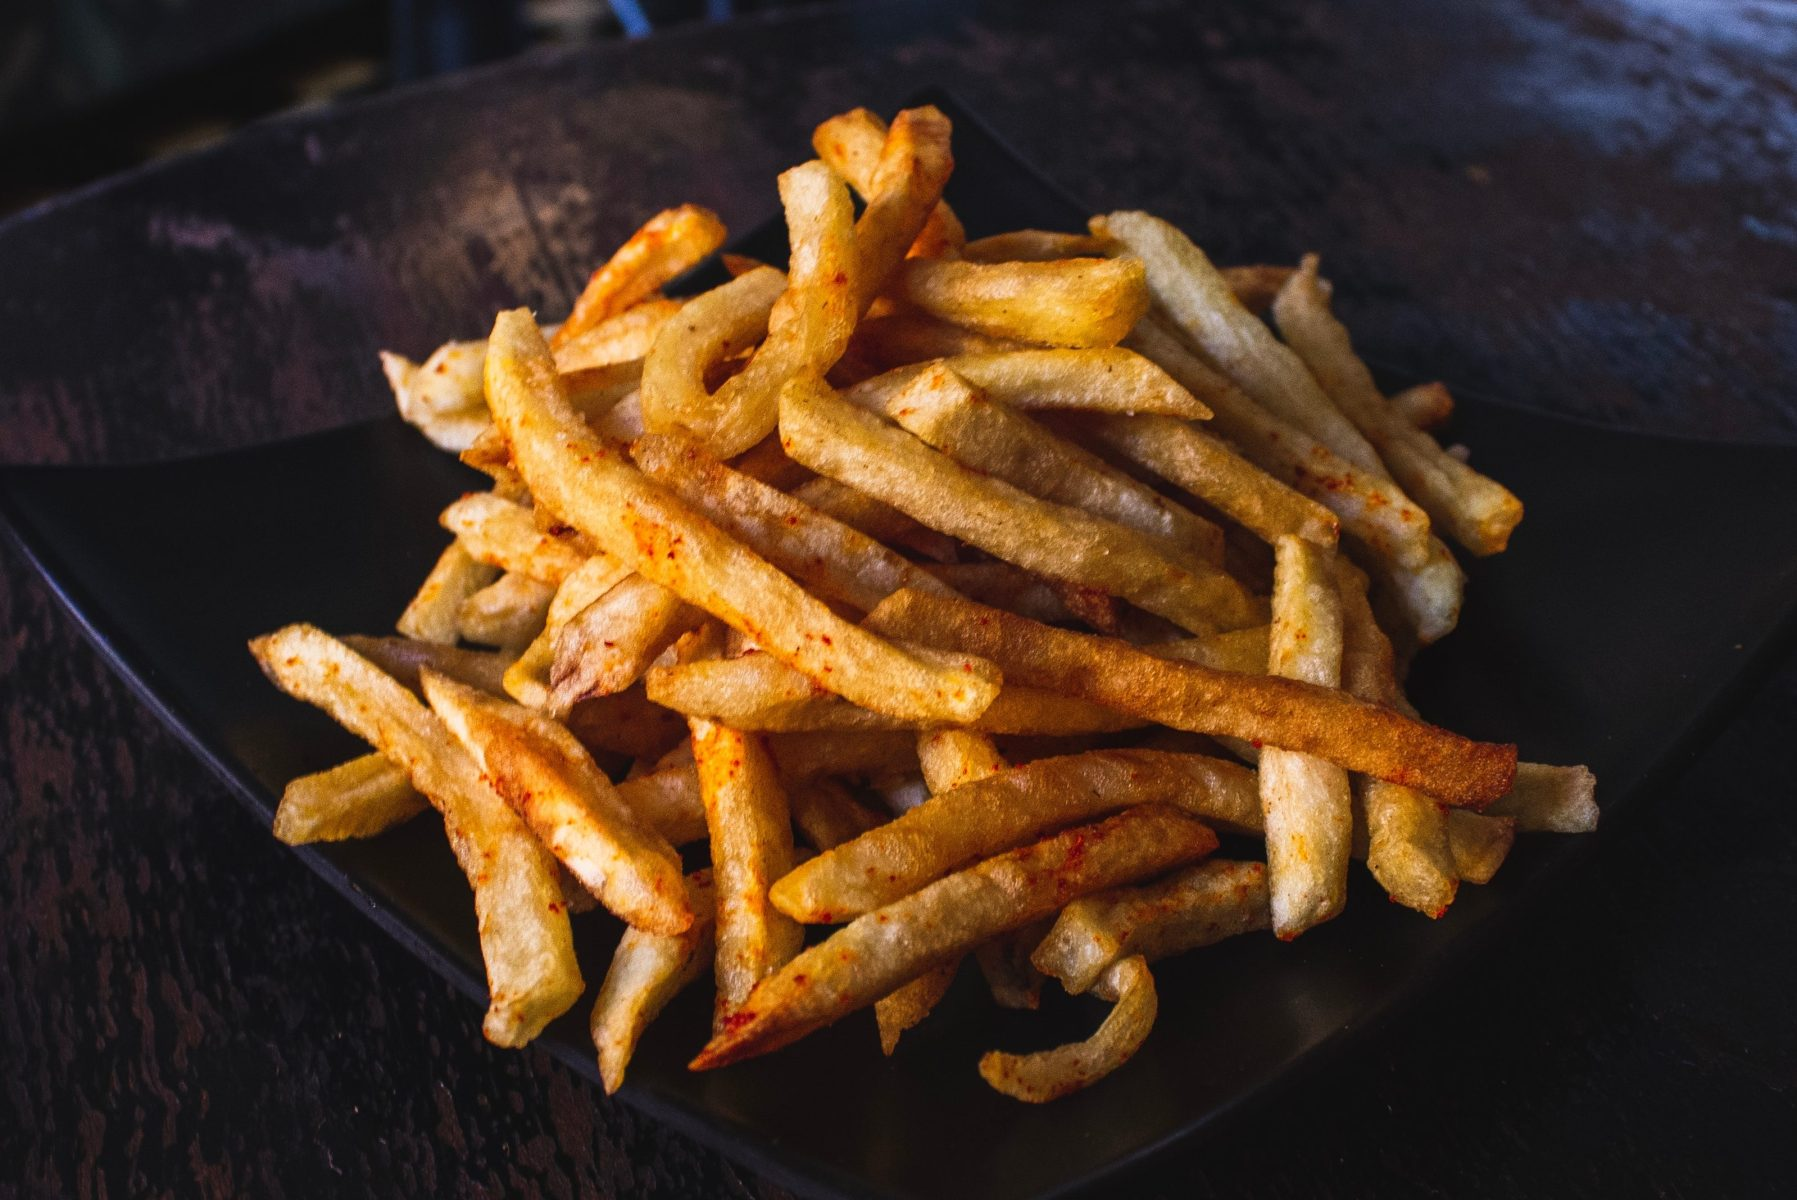 Is There a French Fry Shortage on the Way?